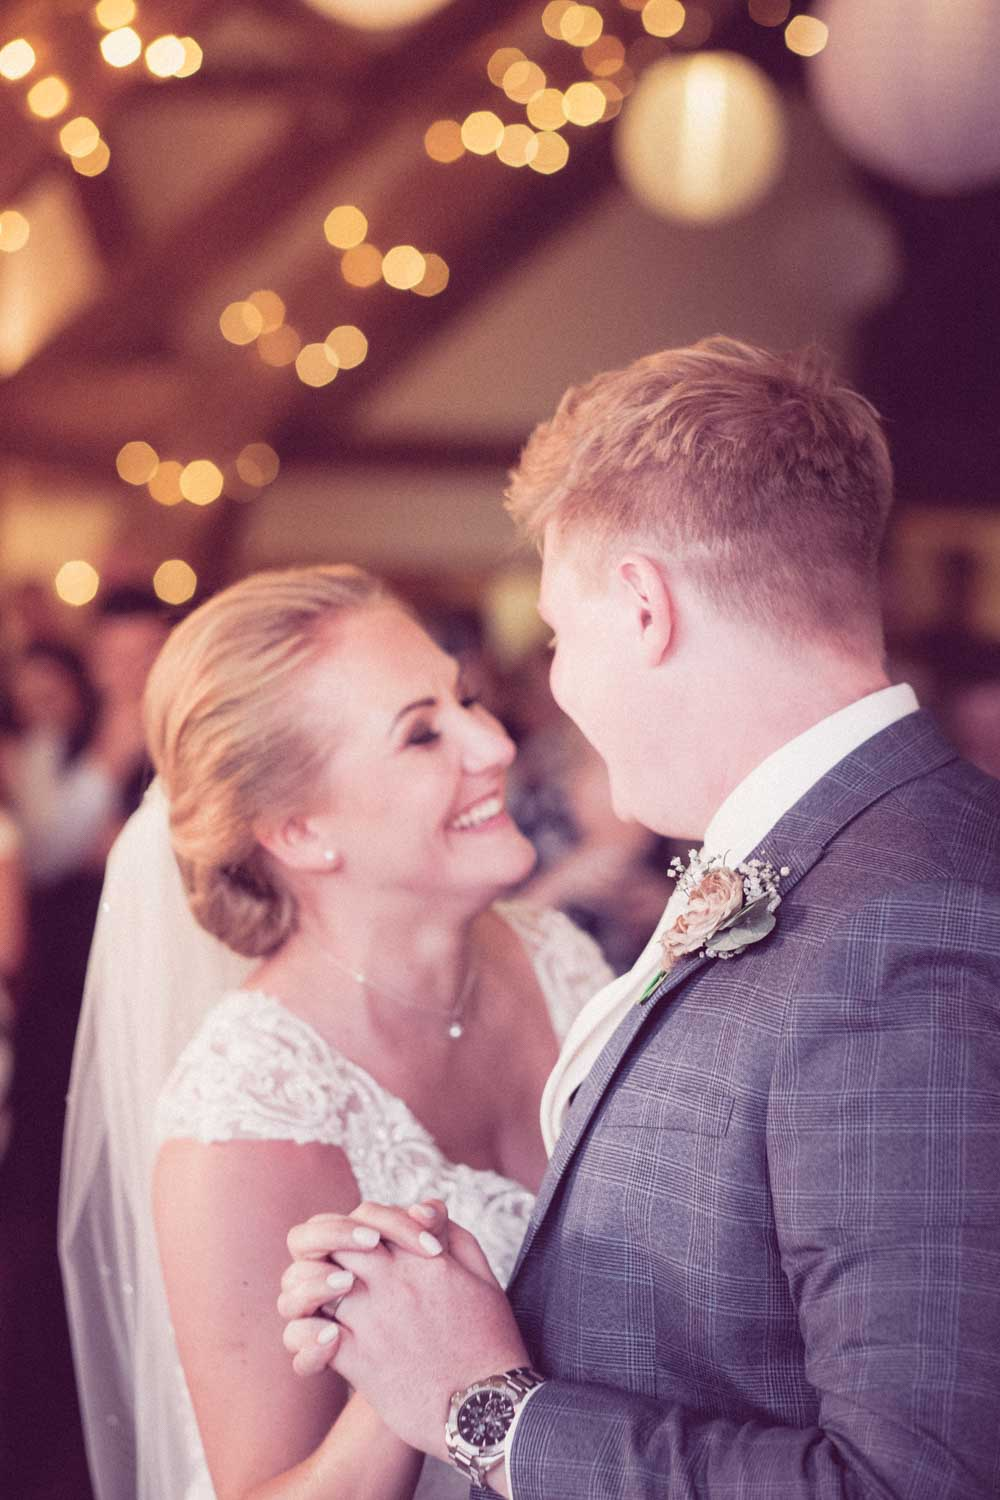 Newlyweds enjoy first dance whilst bride smiles lovingly at groom